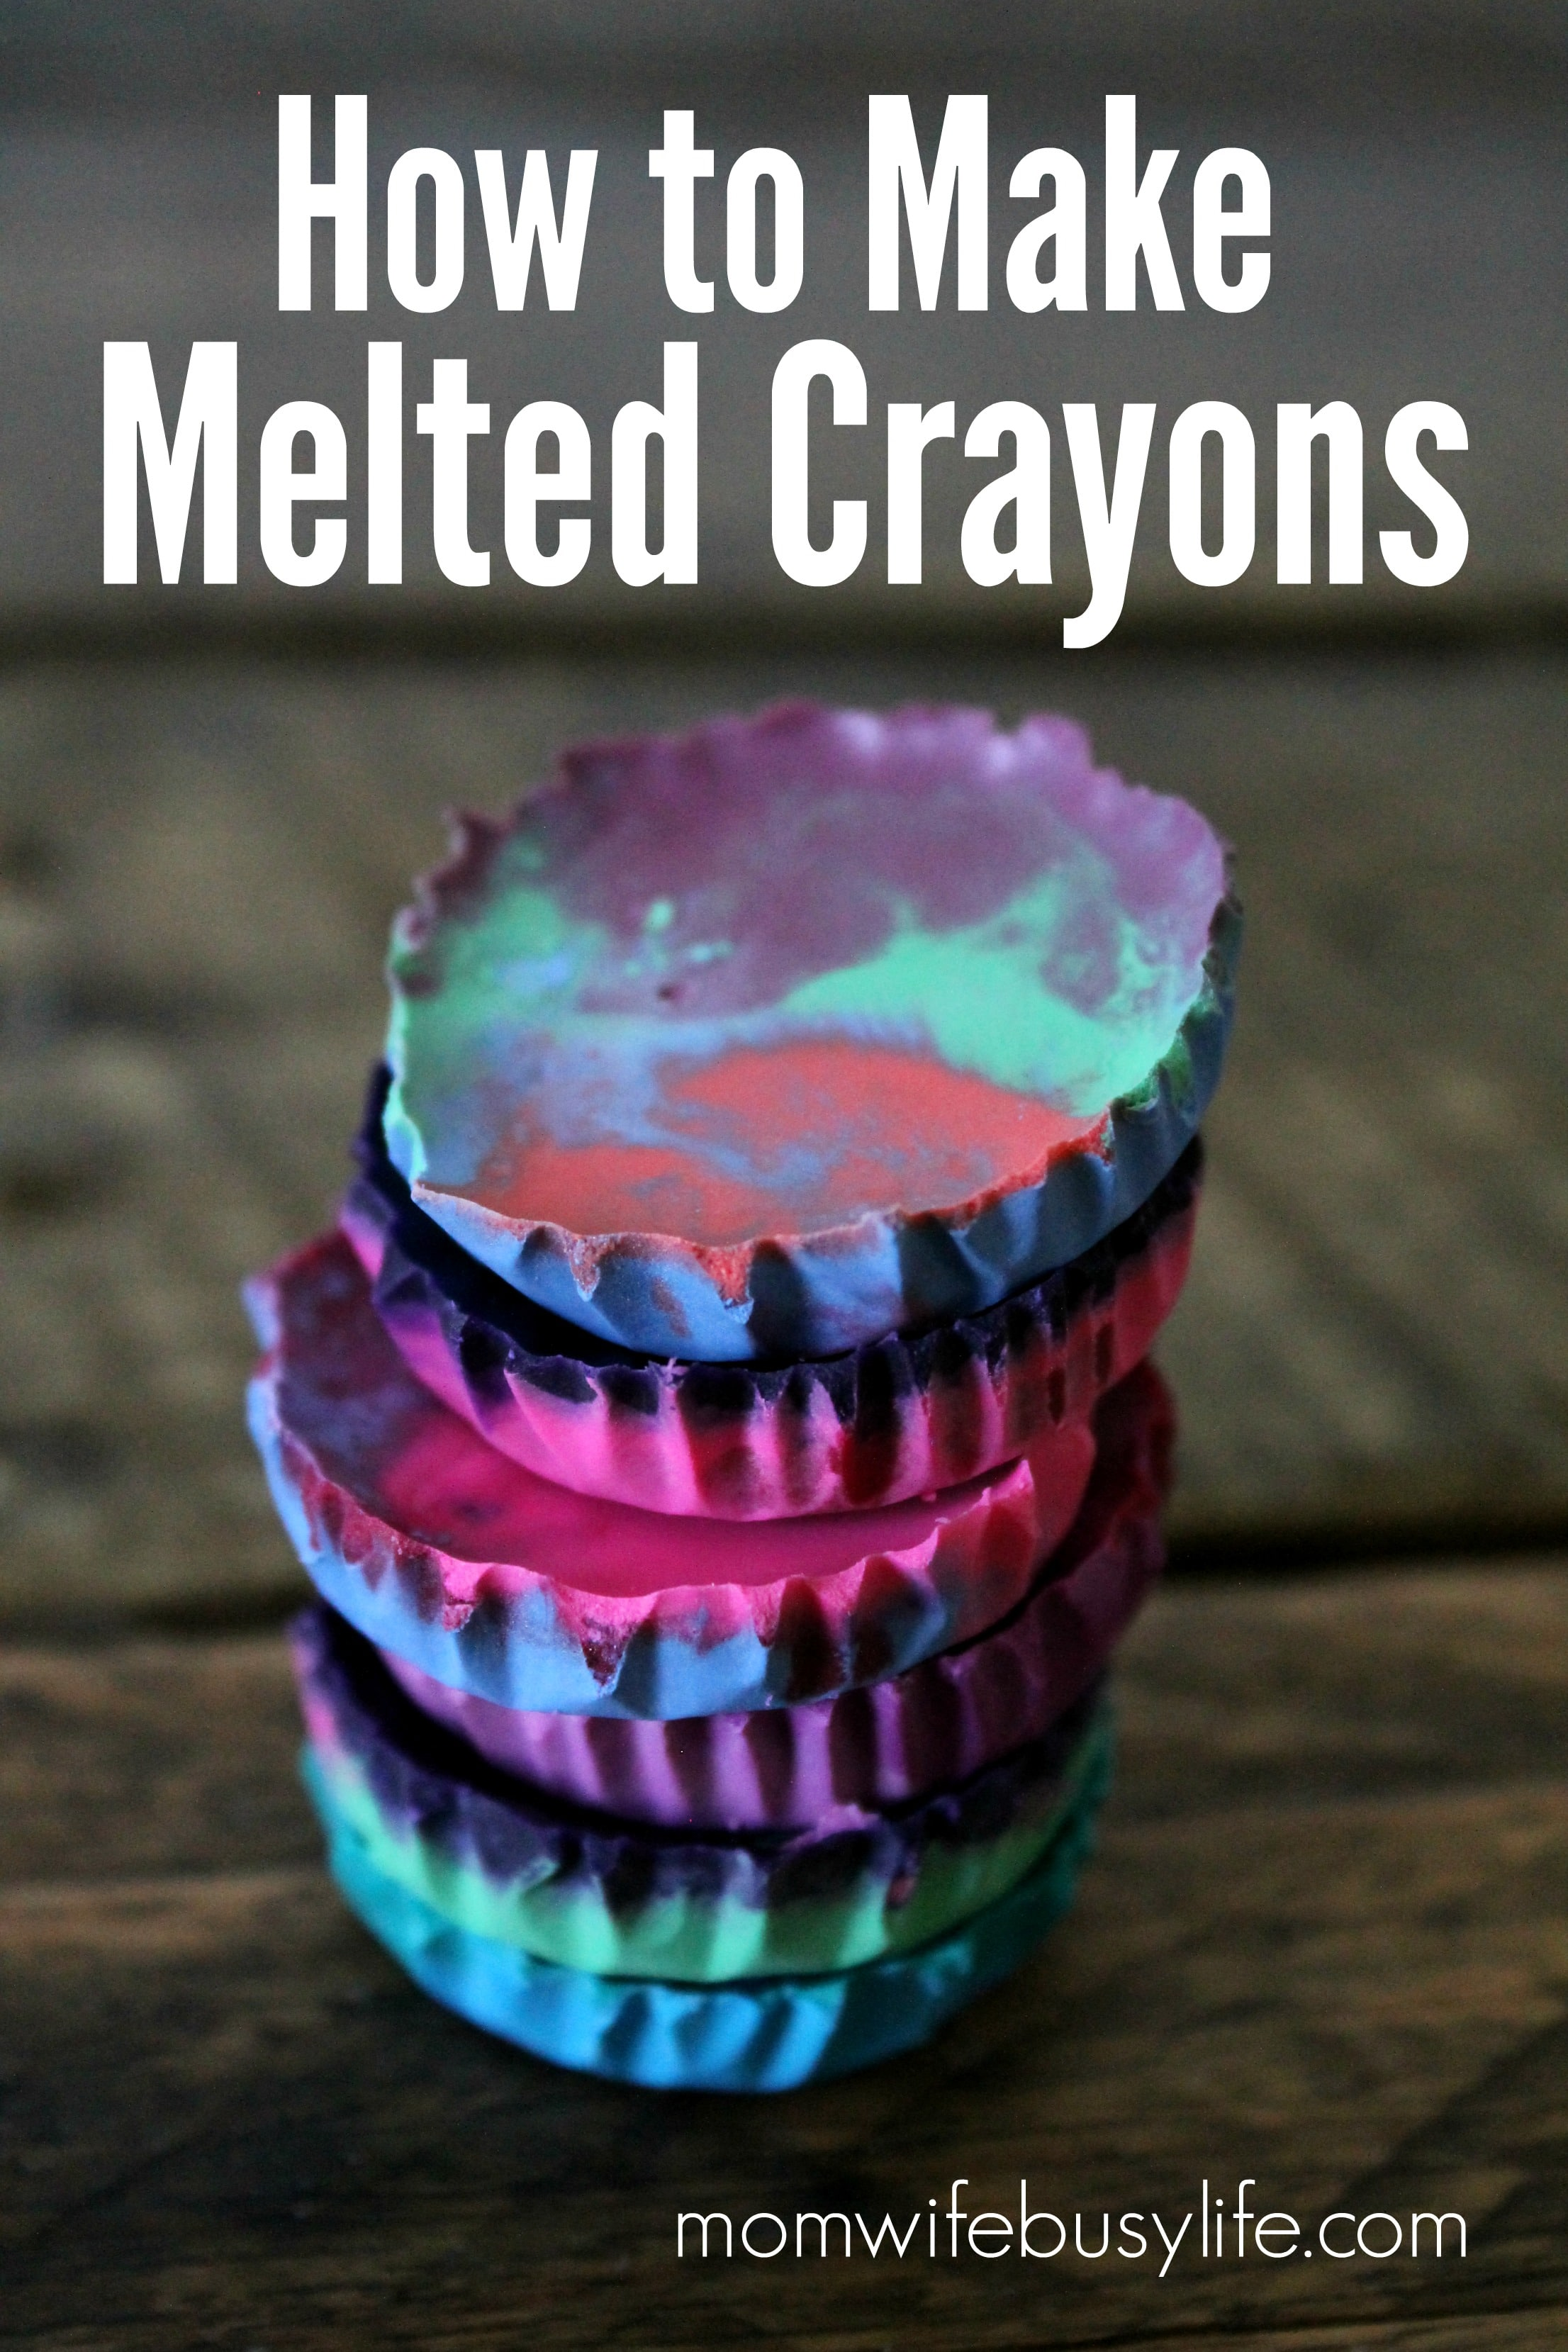 How To Make Melted Crayons Mom Wife Busy Life